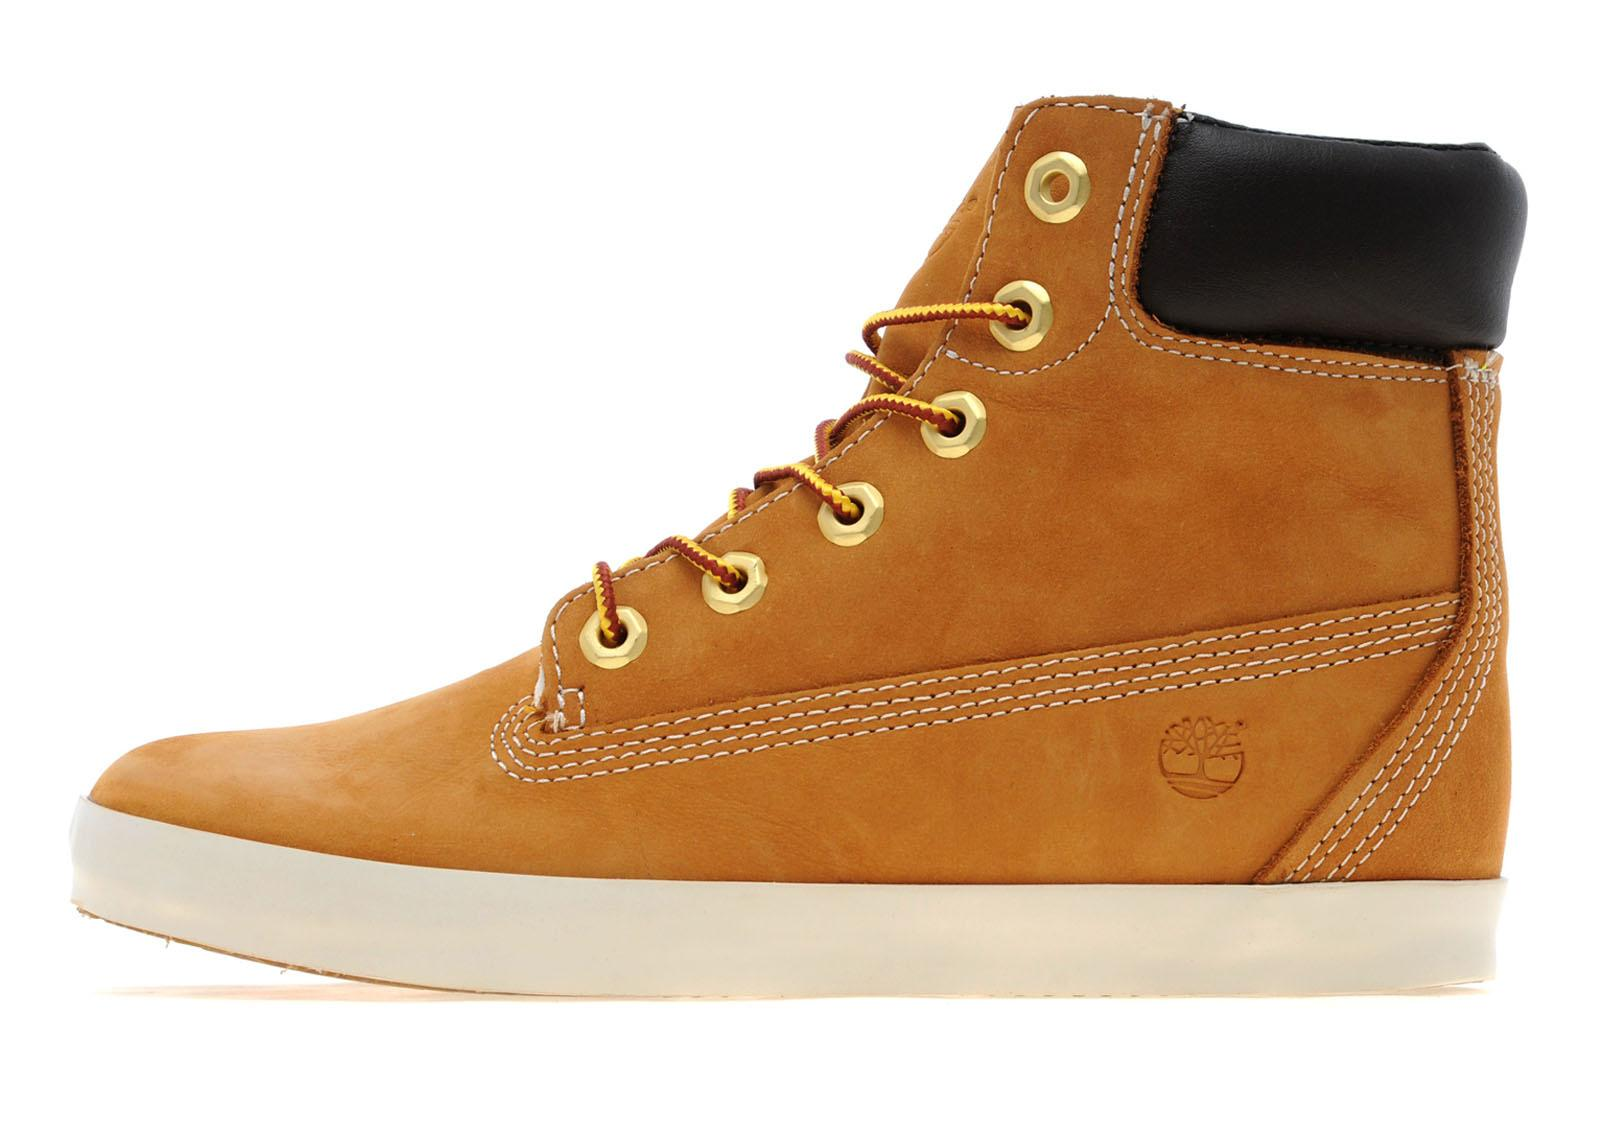 Timberland Boots For Girls Price Aranjacksoncouk